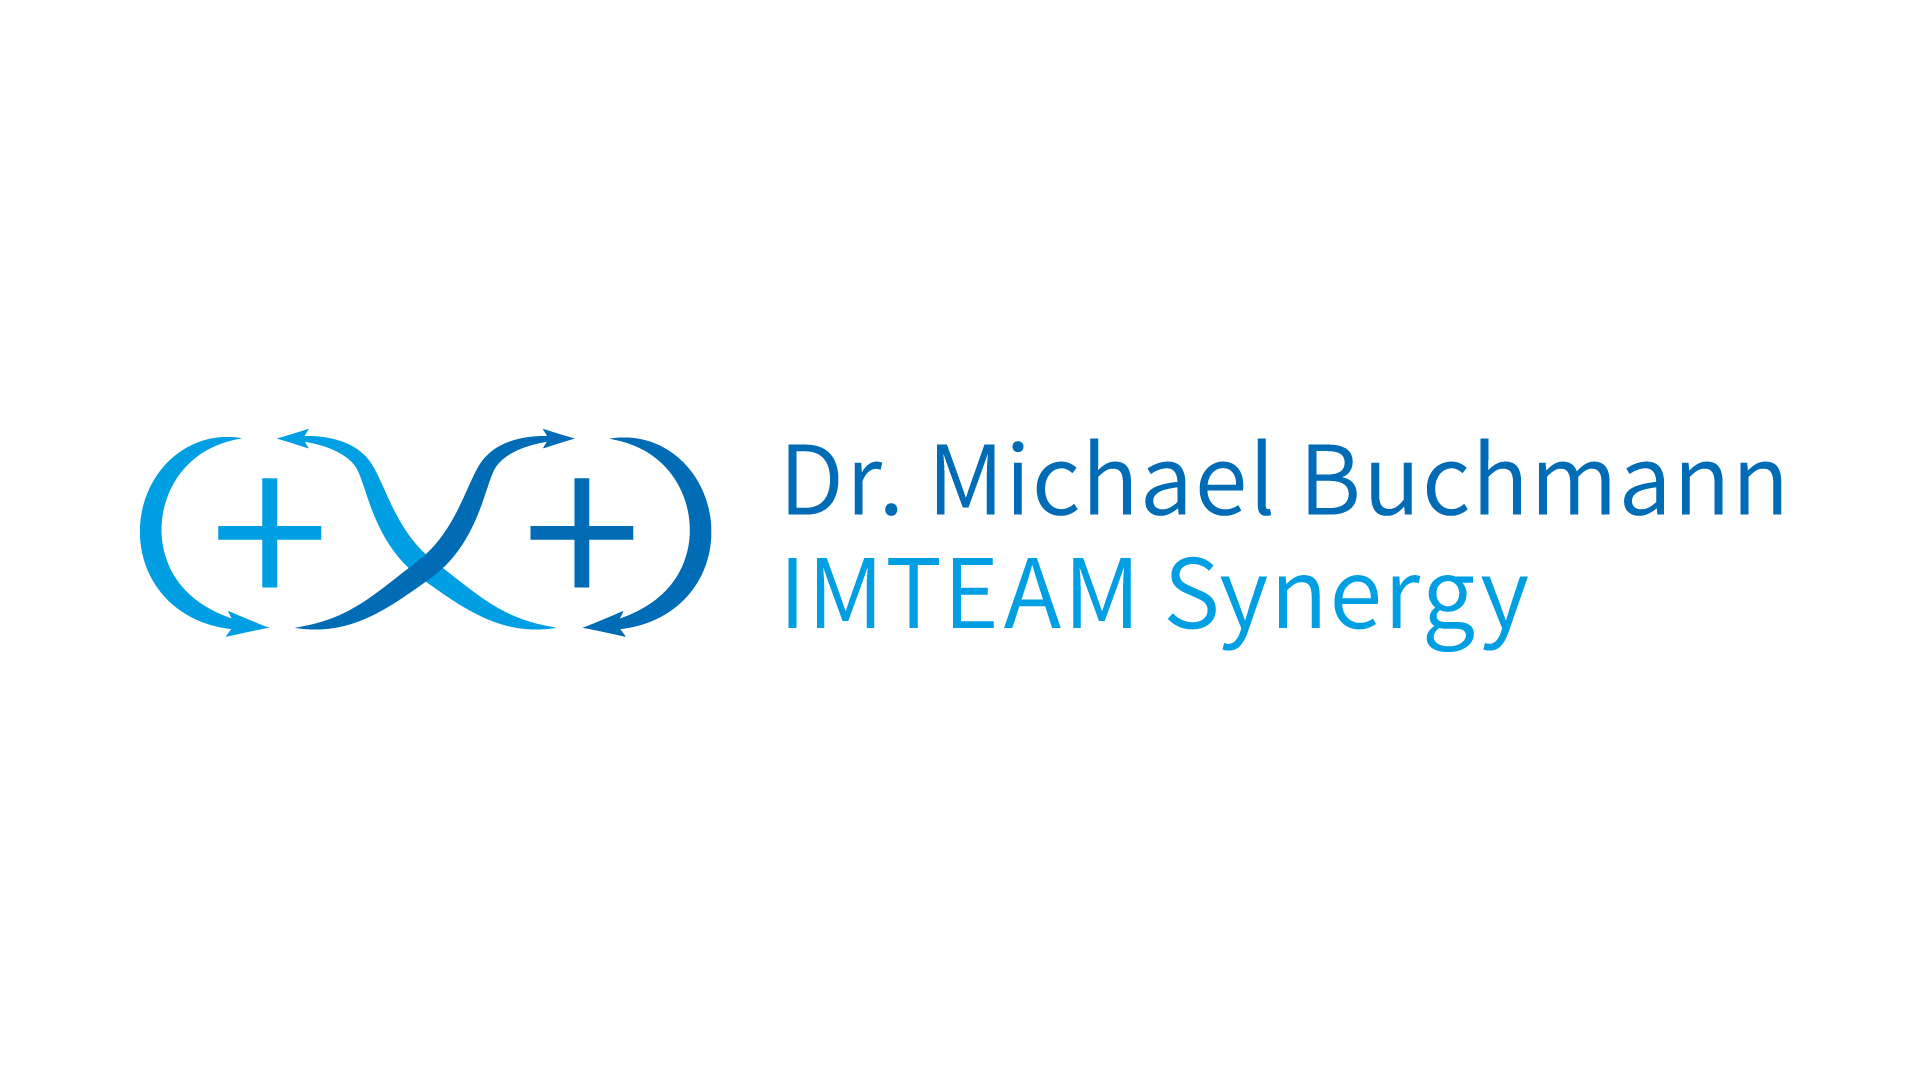 dr. michael buchmann polarity synergy management